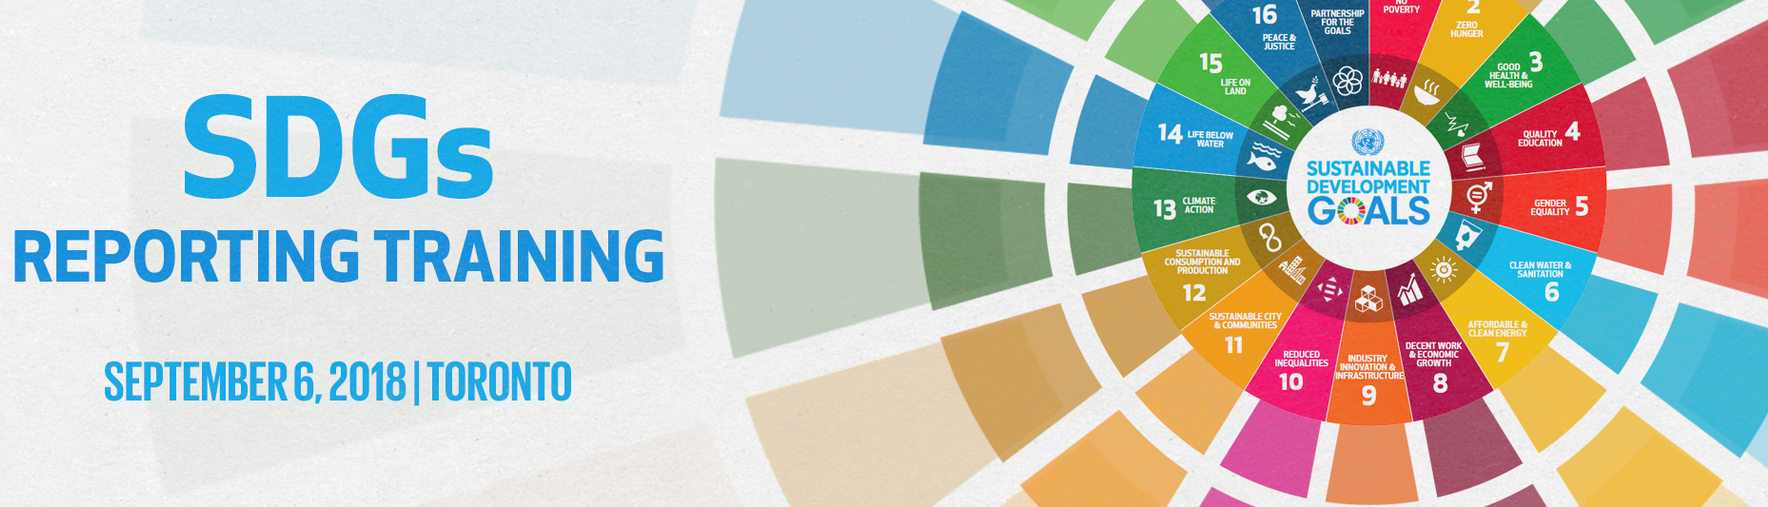 Global Compact Network Canada event banner